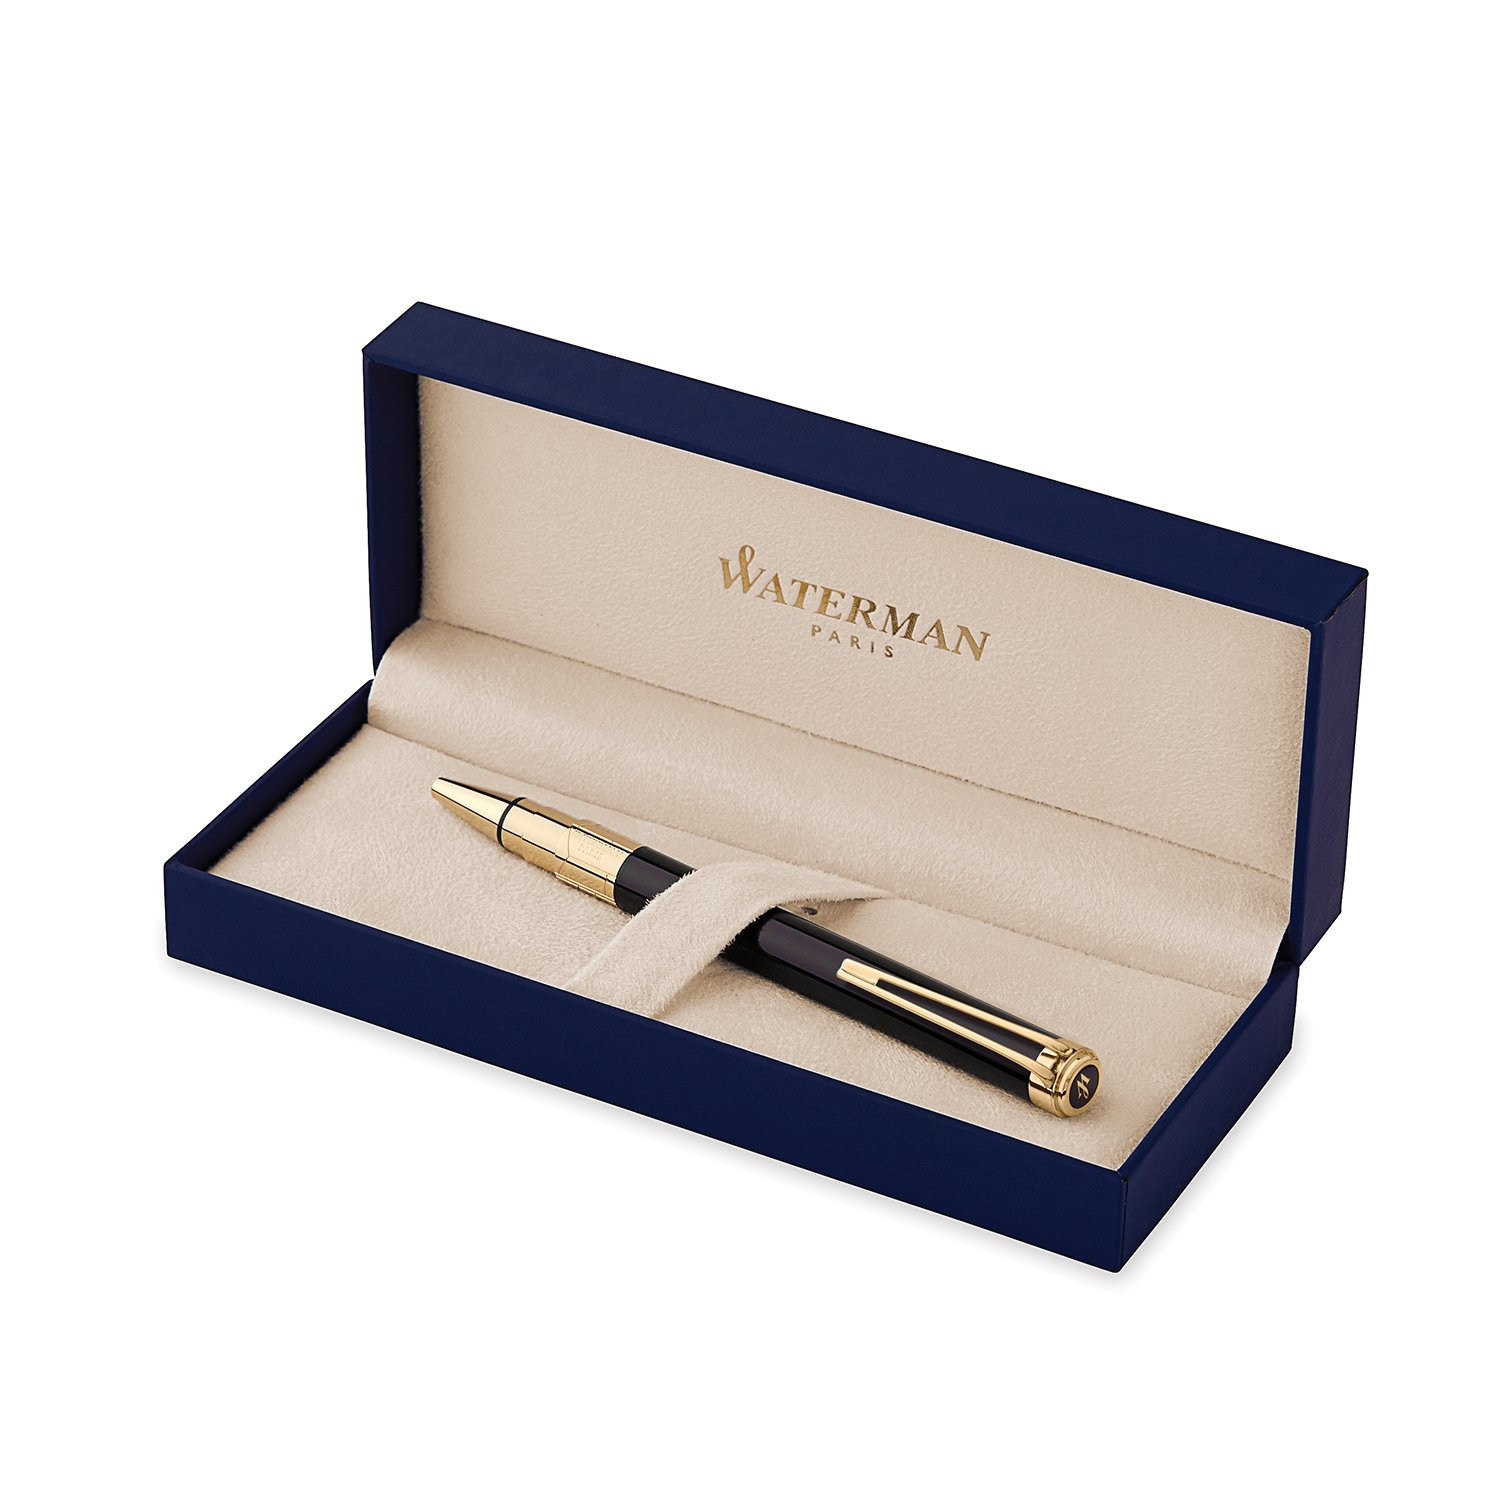 Waterman Perspective Ballpoint Pen, Gloss Black with 23k Gold Clip, Medium Point with Blue Ink Cartridge, Gift Box